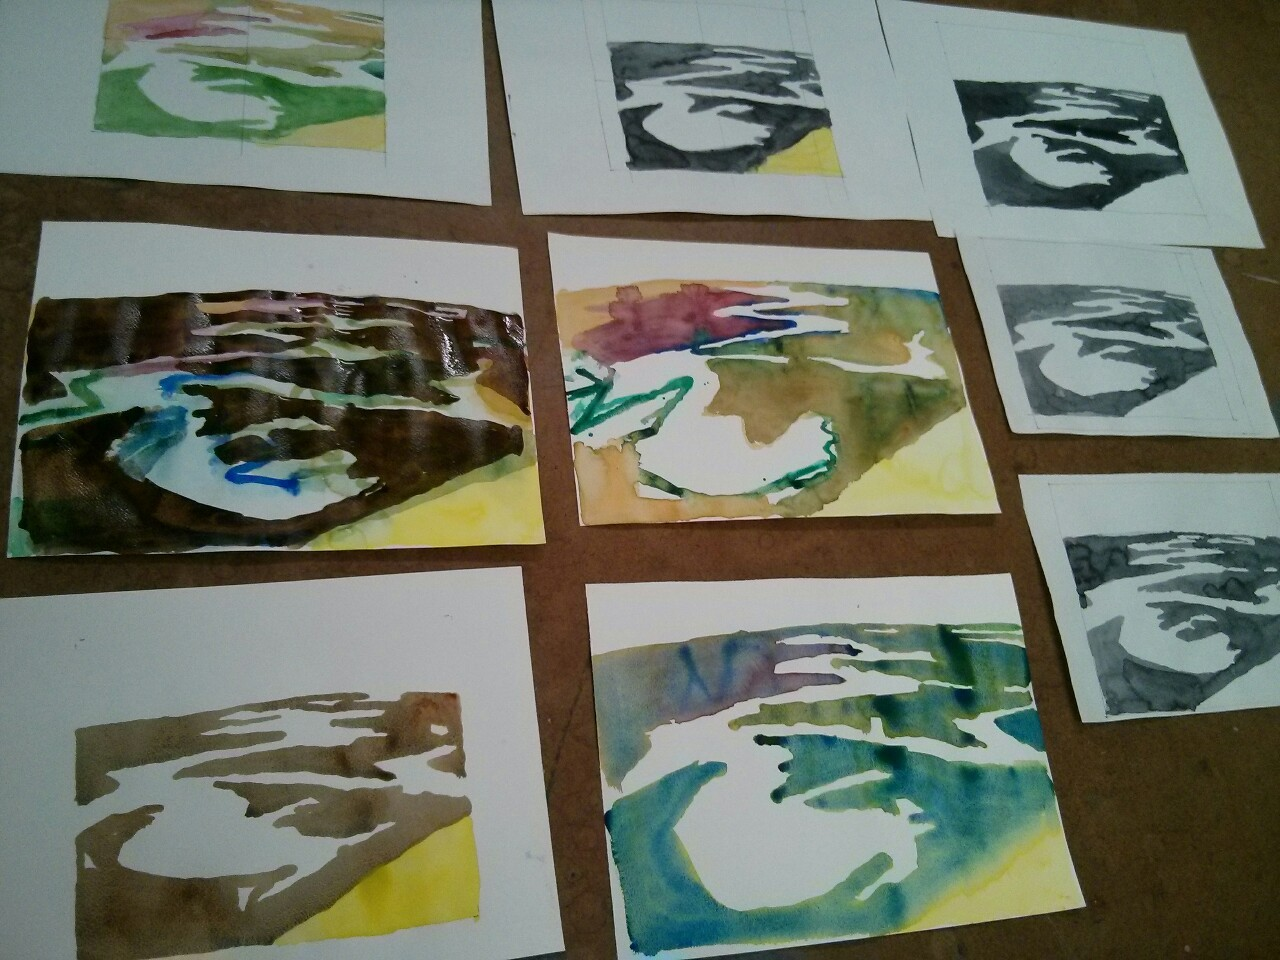 I have been making some watercolours, trying to sort out shapes in the canvases I'm working on.